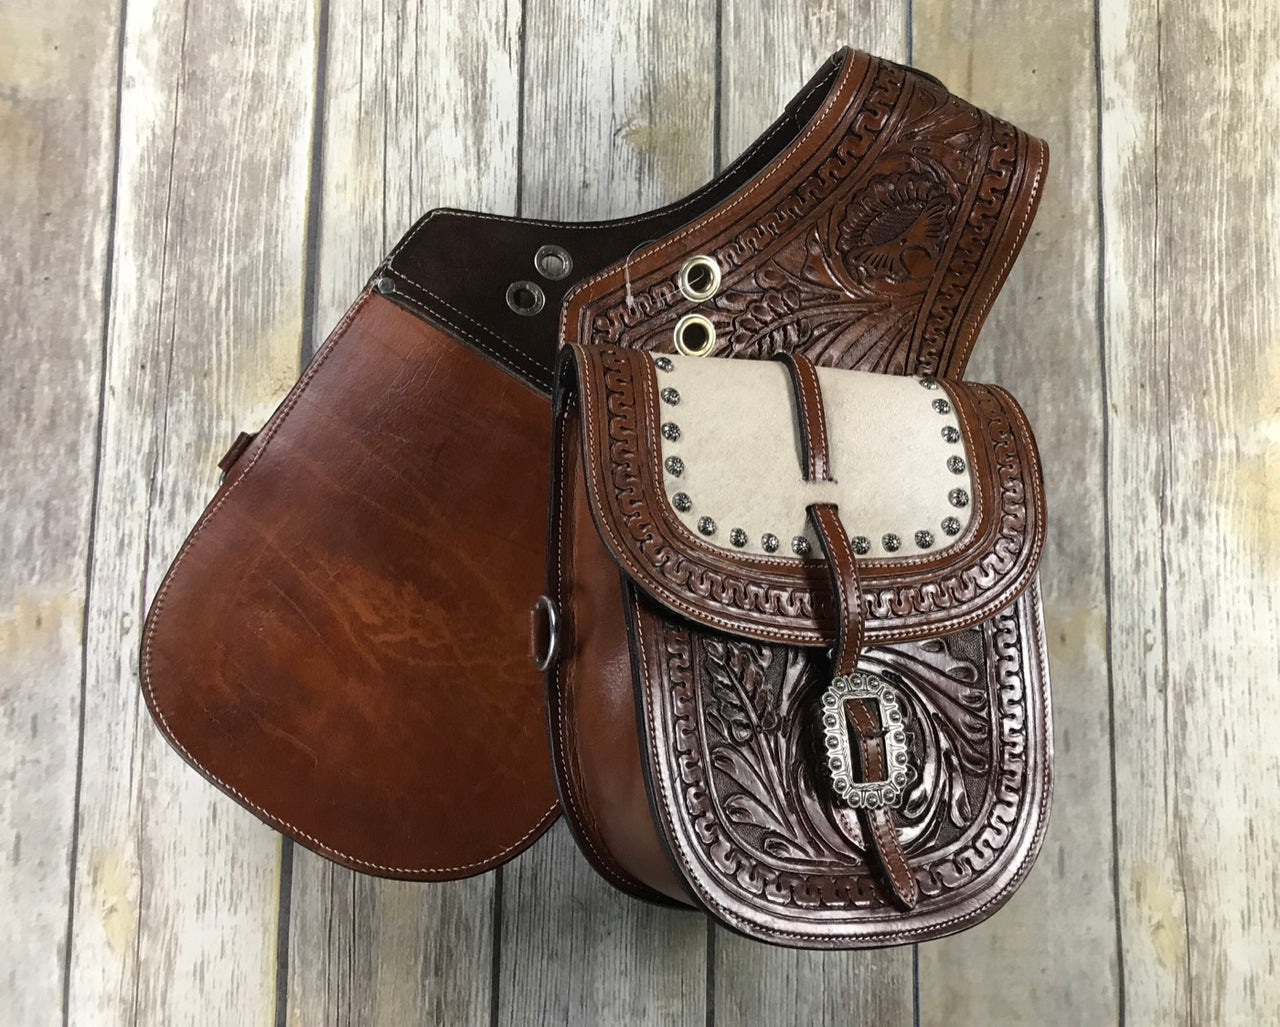 Tooled Leather Saddle Bags in Brown - One Size